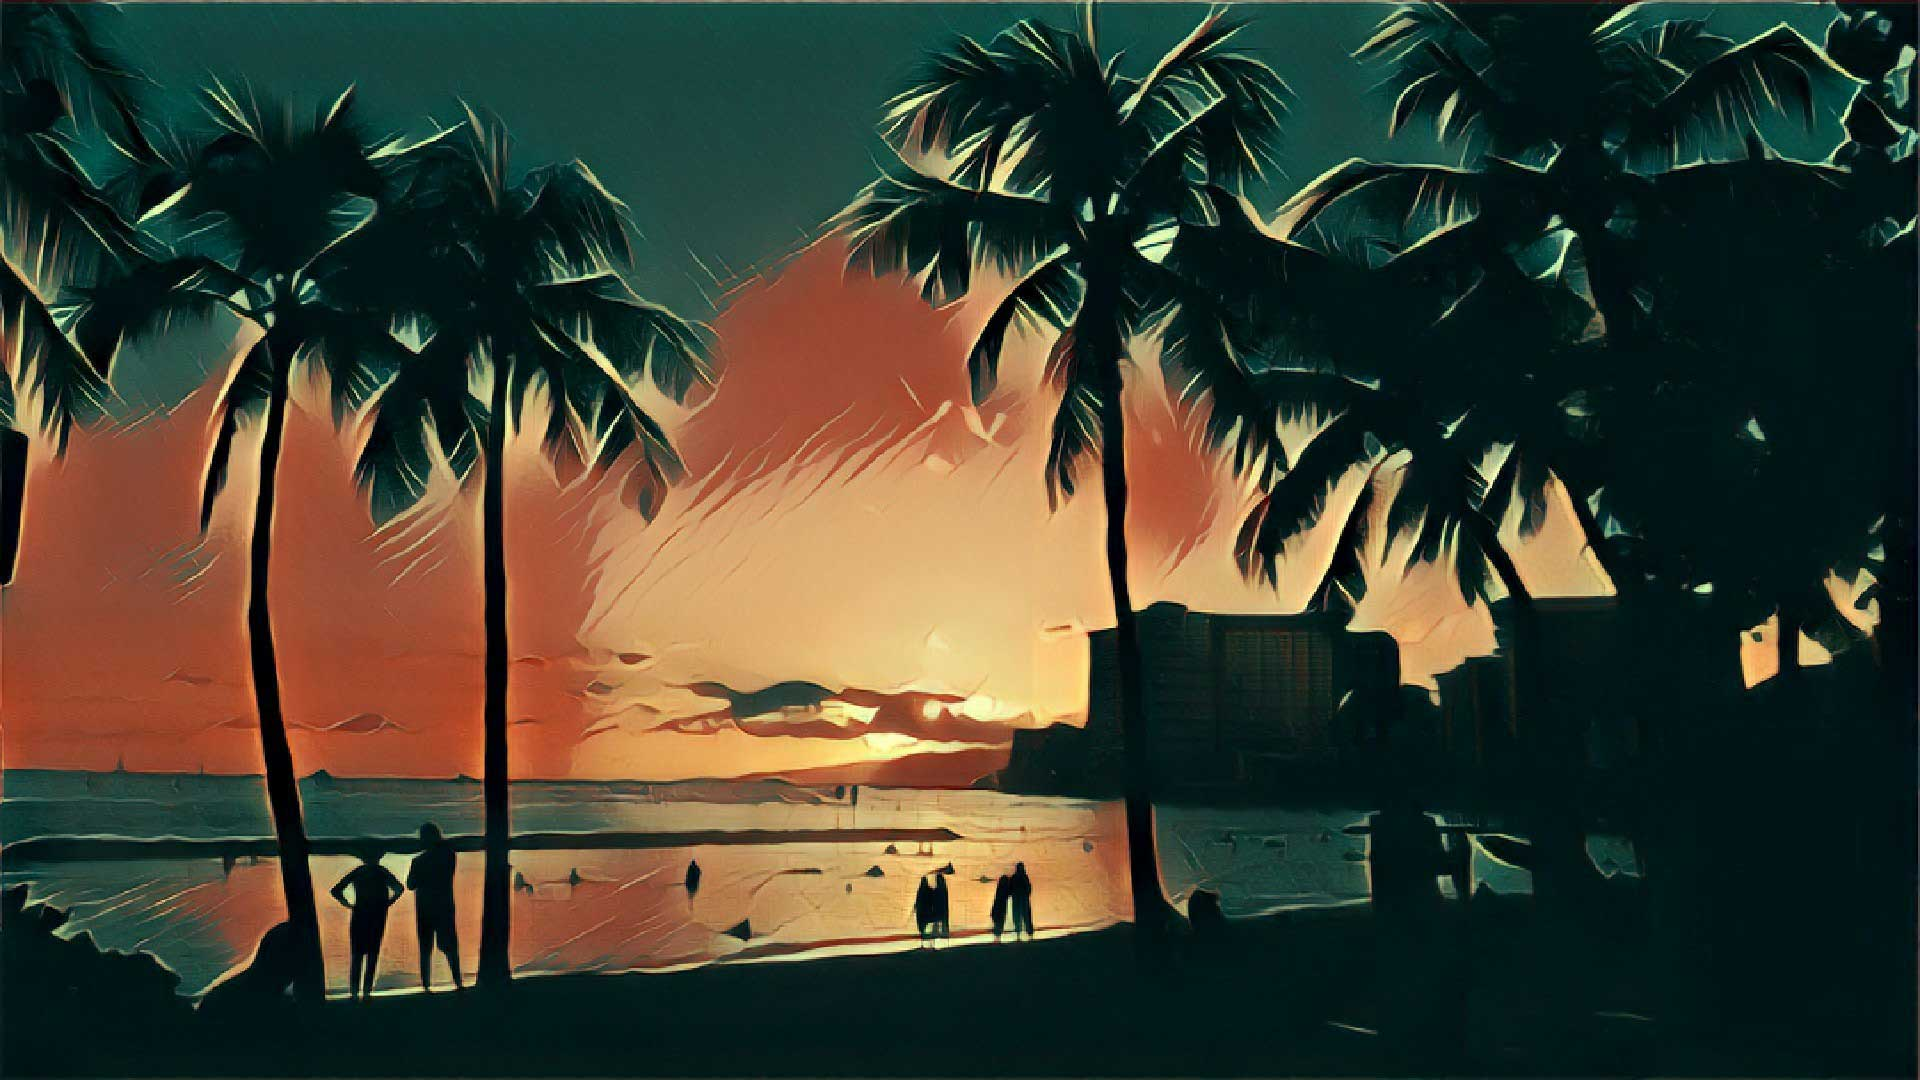 Waikiki Beach Night